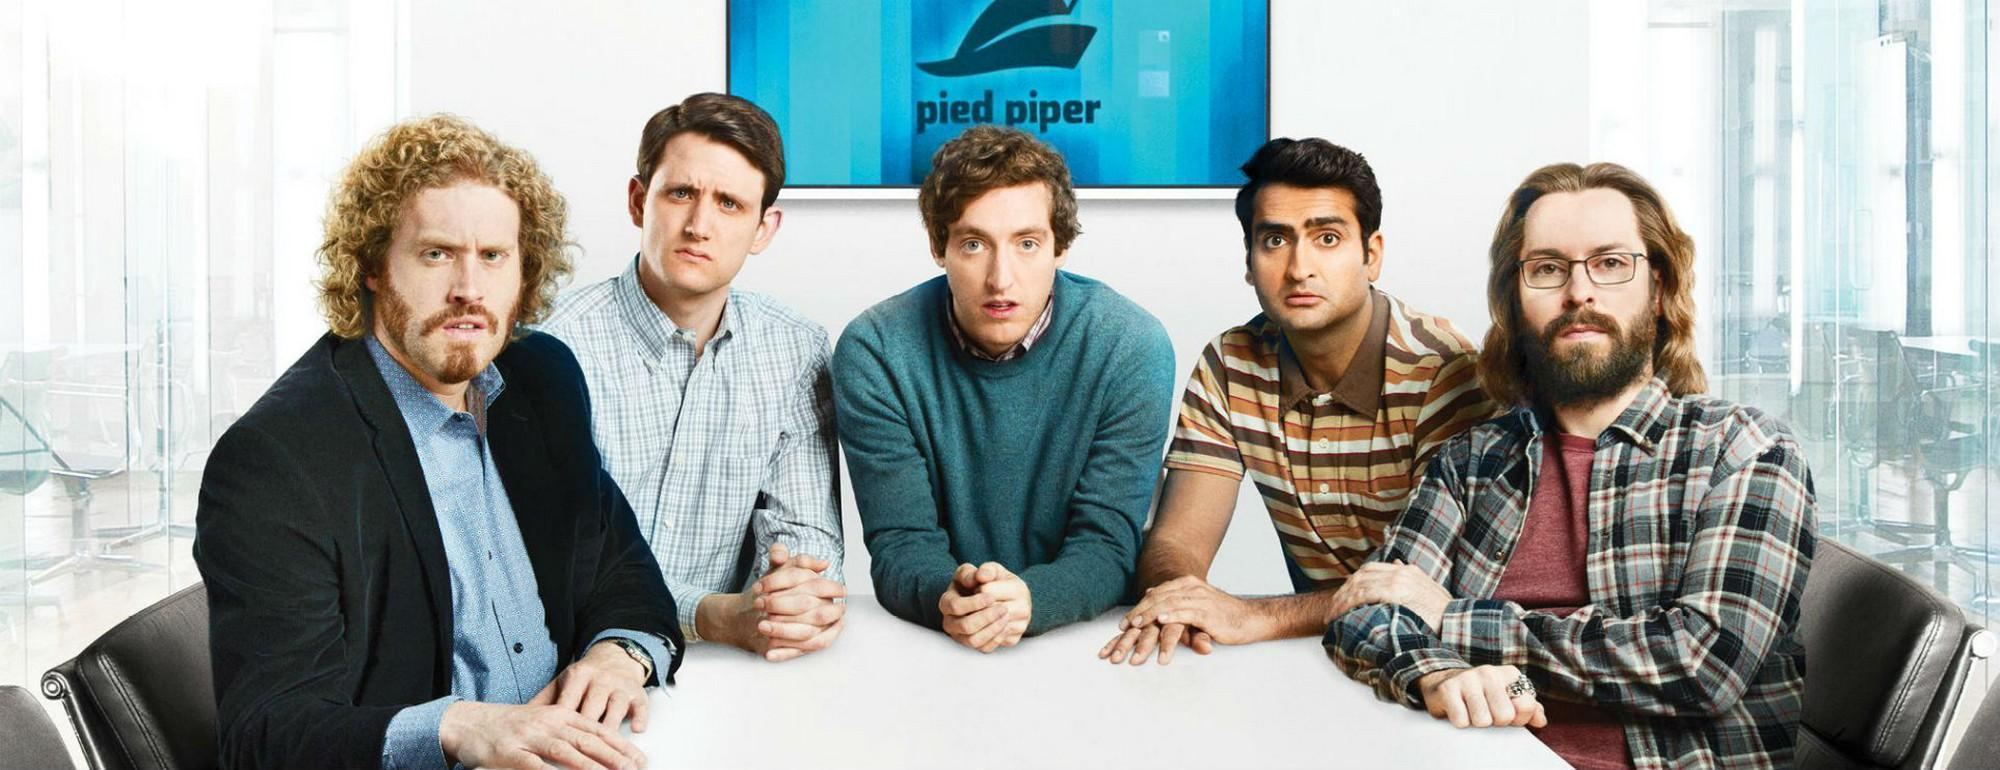 La saison 4 de Silicon Valley arrive le 23 avril 2017 sur HBO